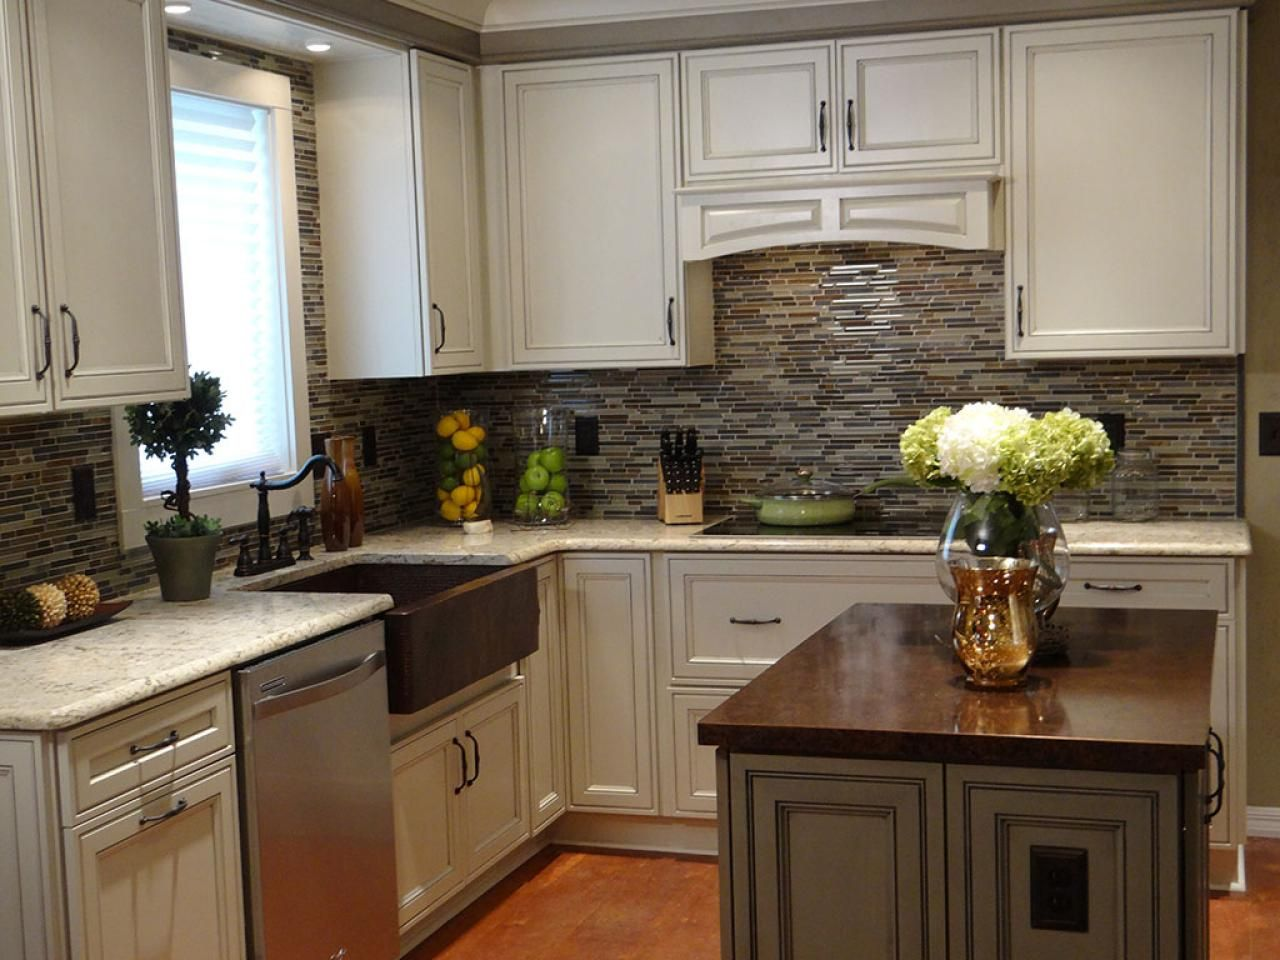 Kitchen make your kitchen dazzle with pertaining to kitchen design - 20 Small Kitchen Makeovers By Hgtv Hosts